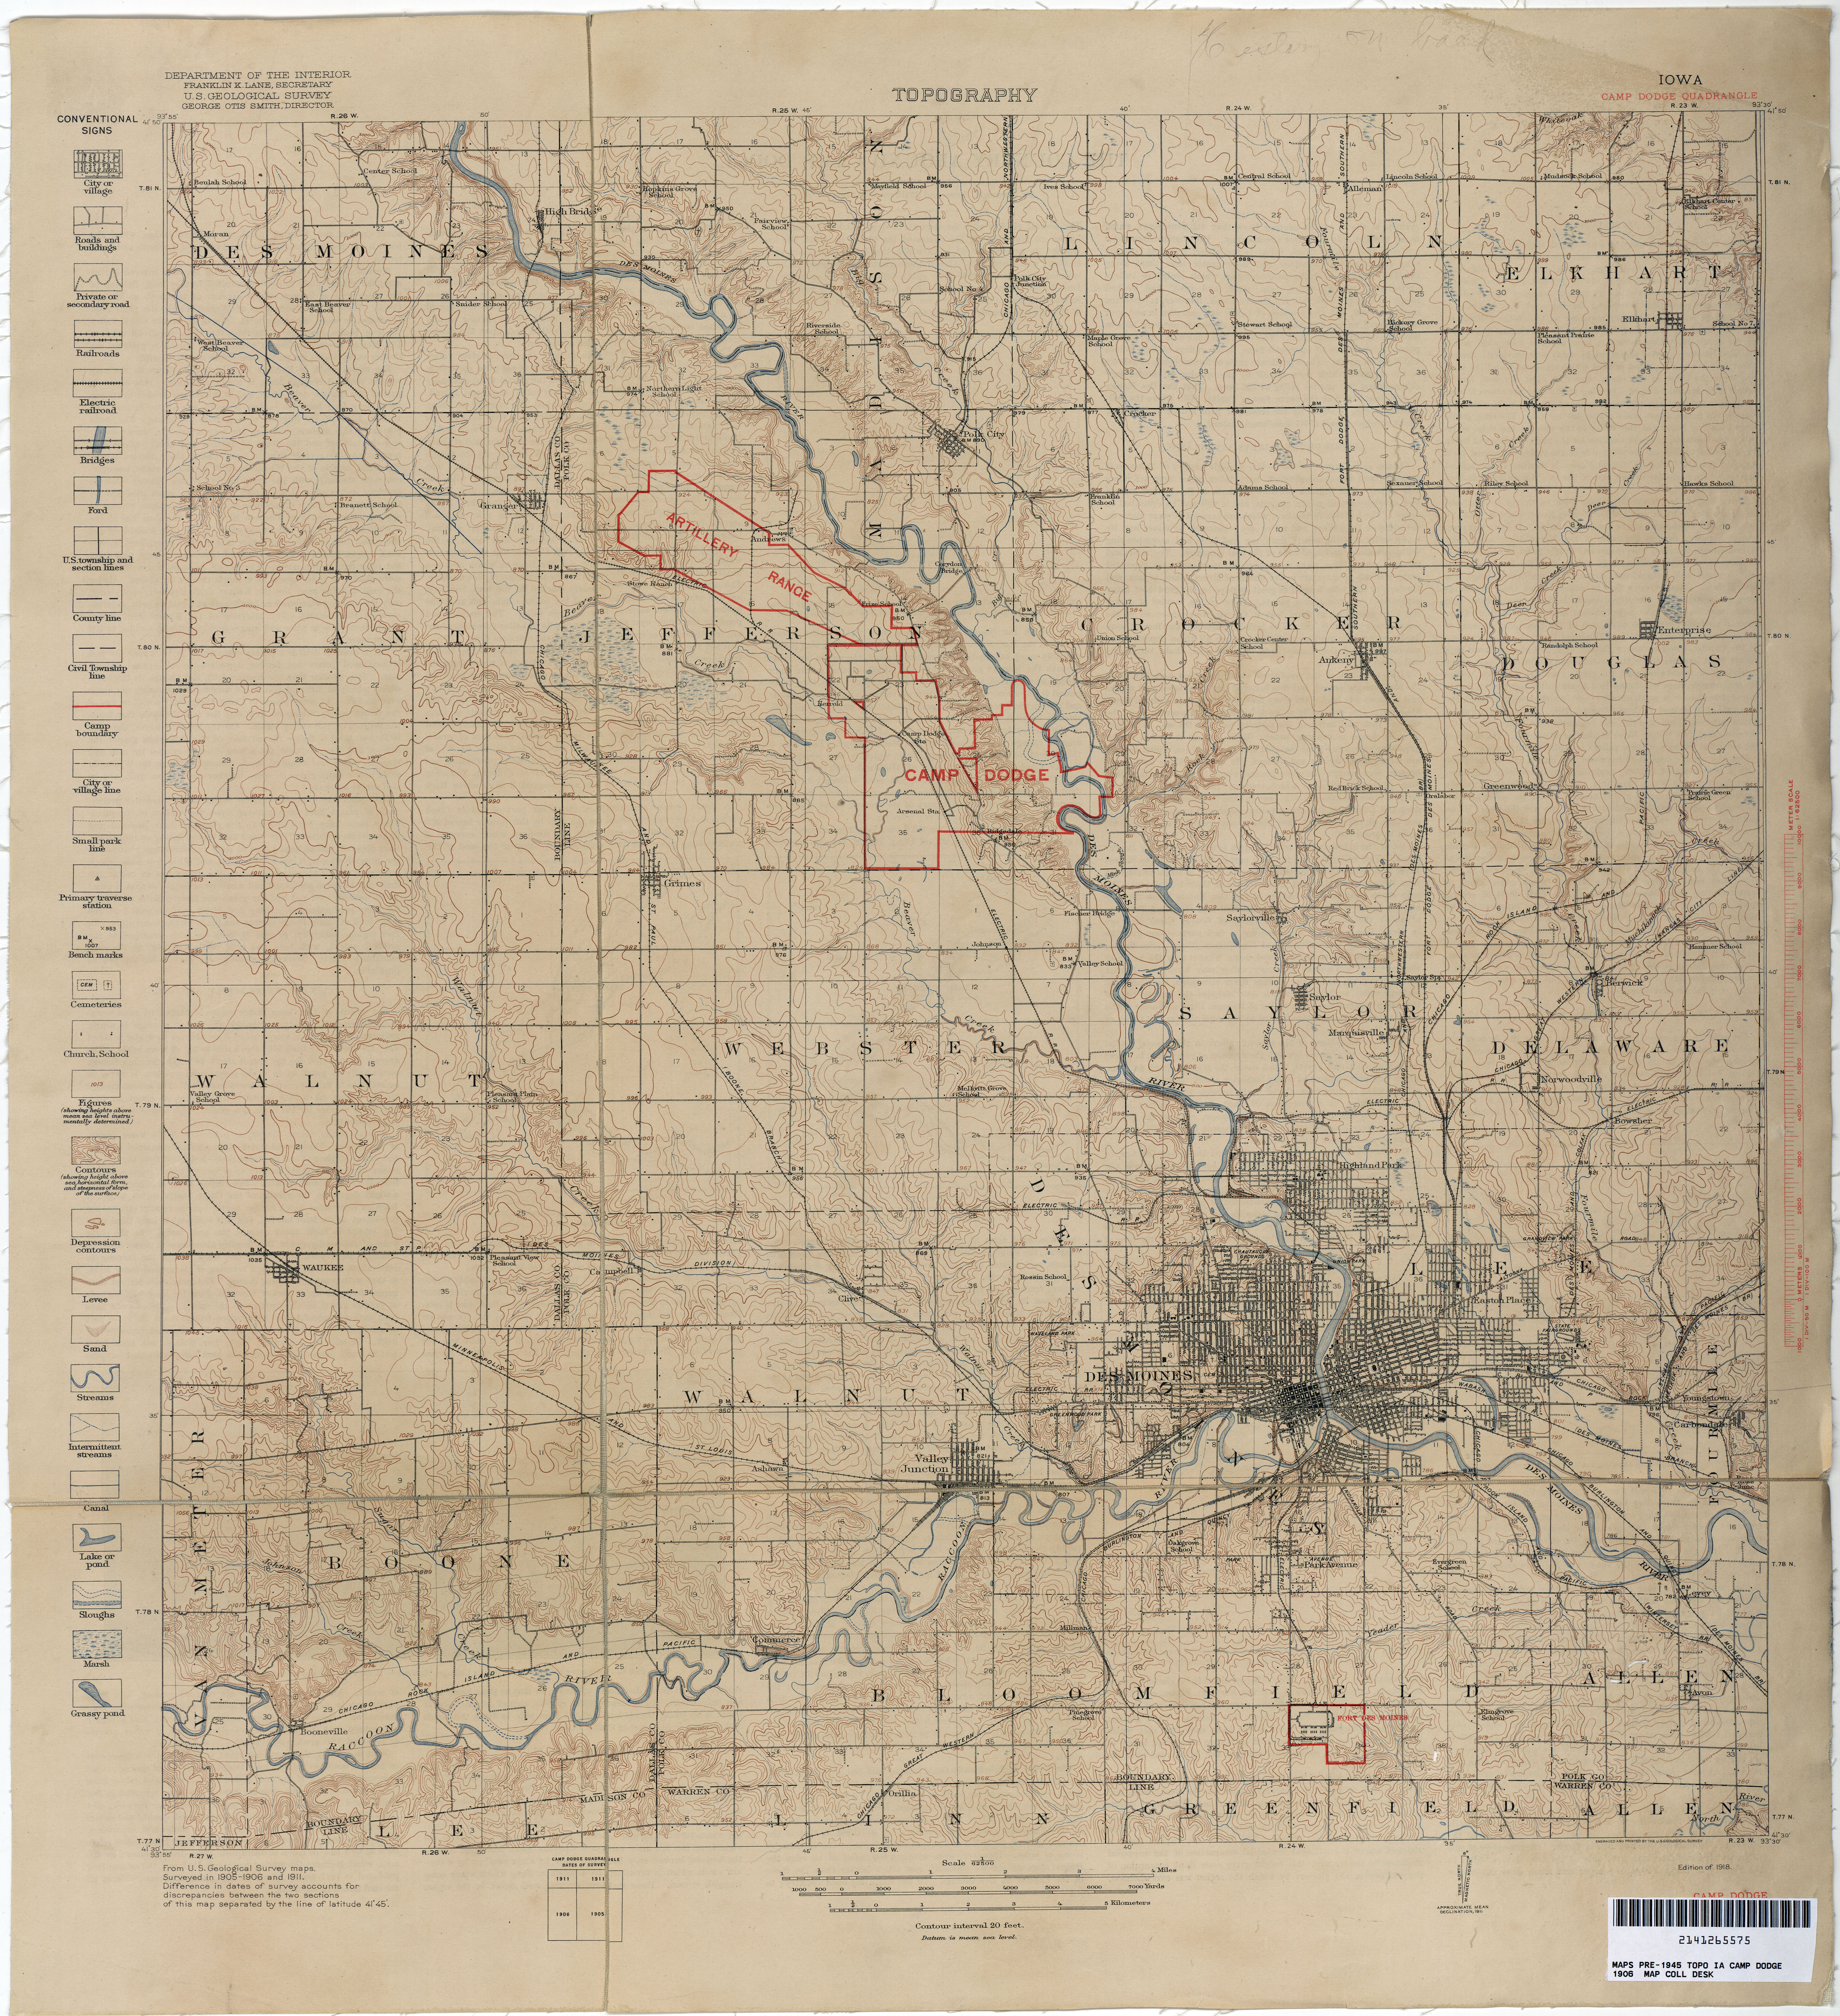 Iowa Historical Topographic Maps - Perry-Castañeda Map Collection ...